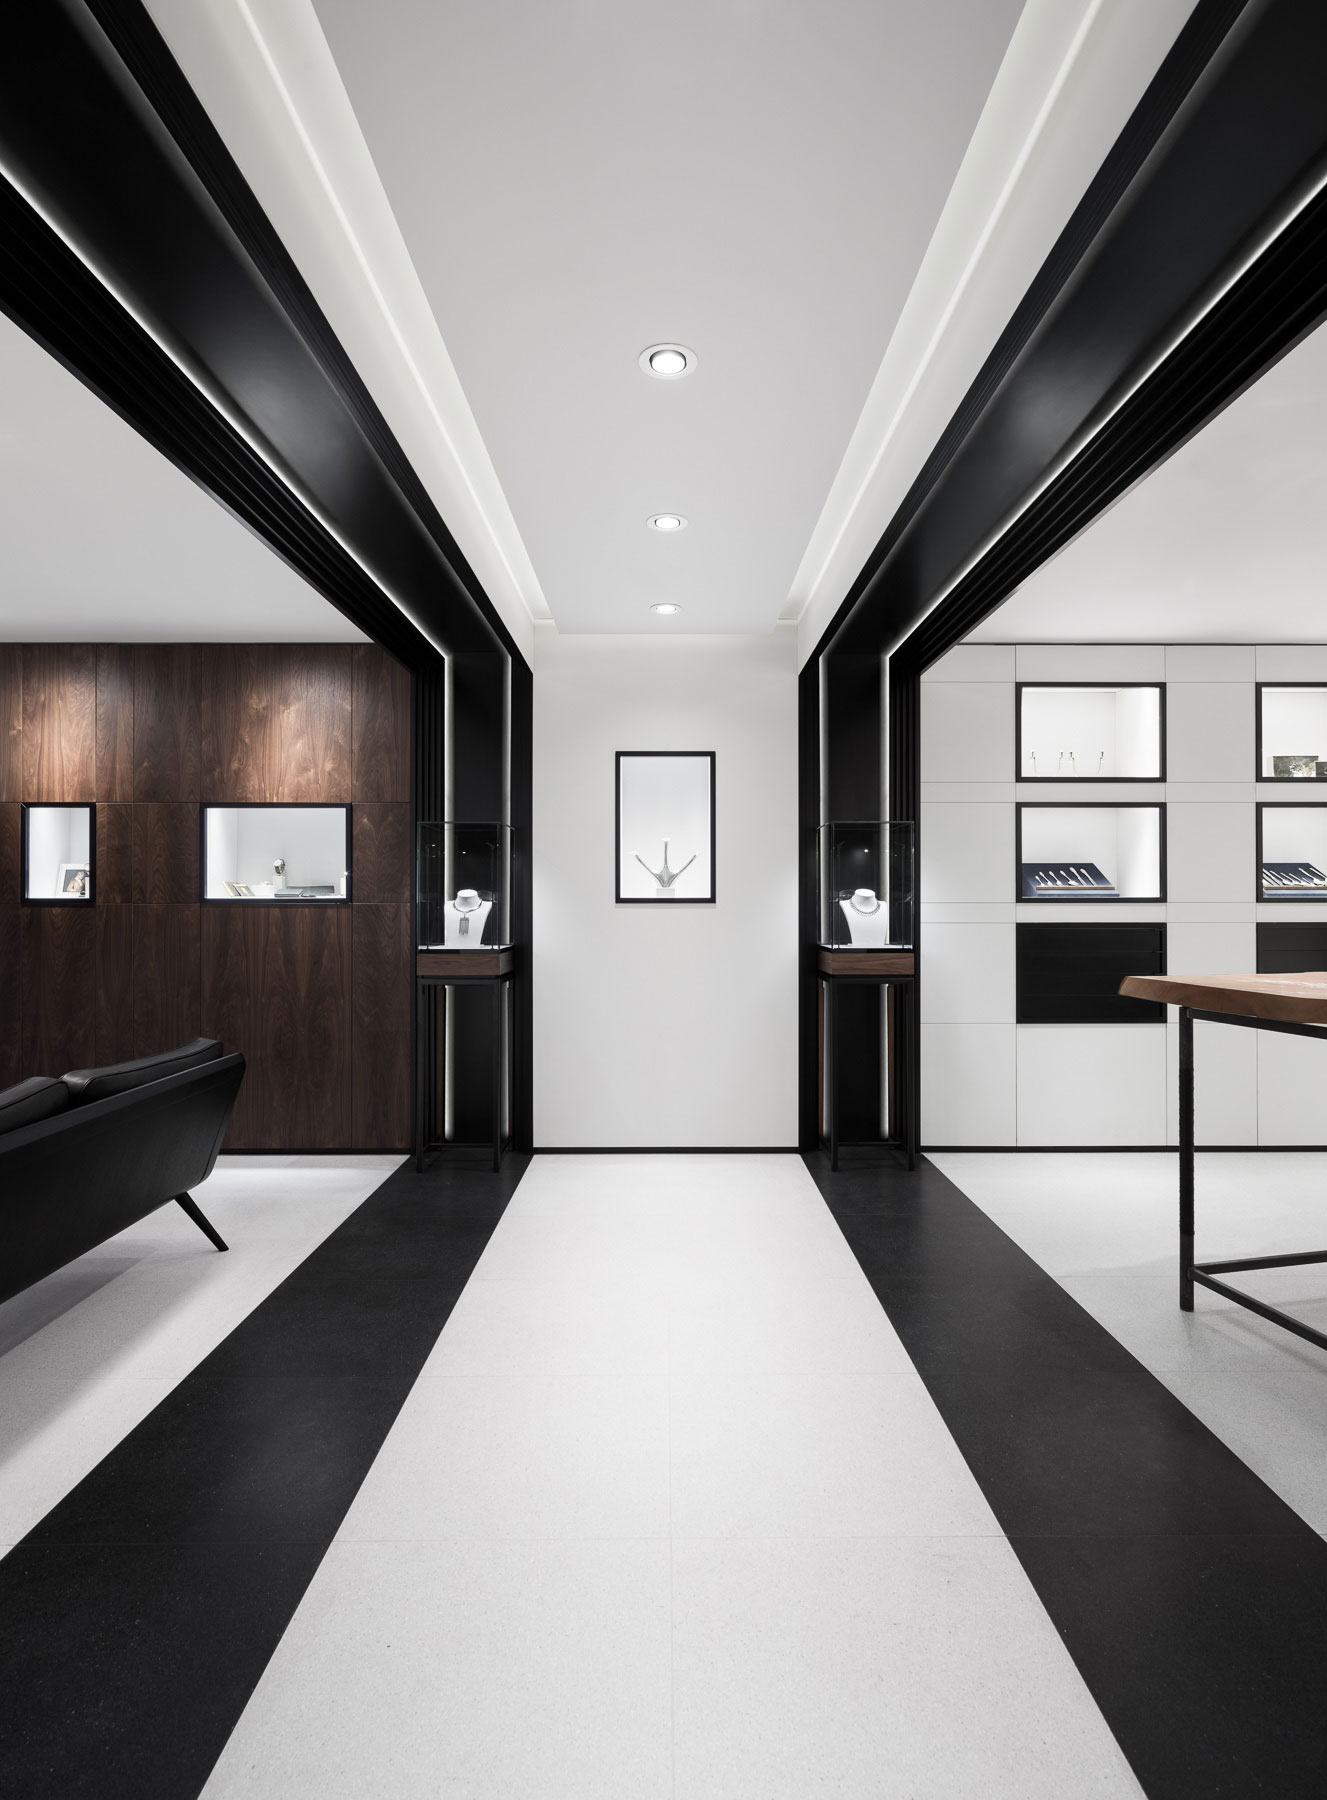 Georg jensen 39 s london boutique by studio david thulstrup for Interior design south london